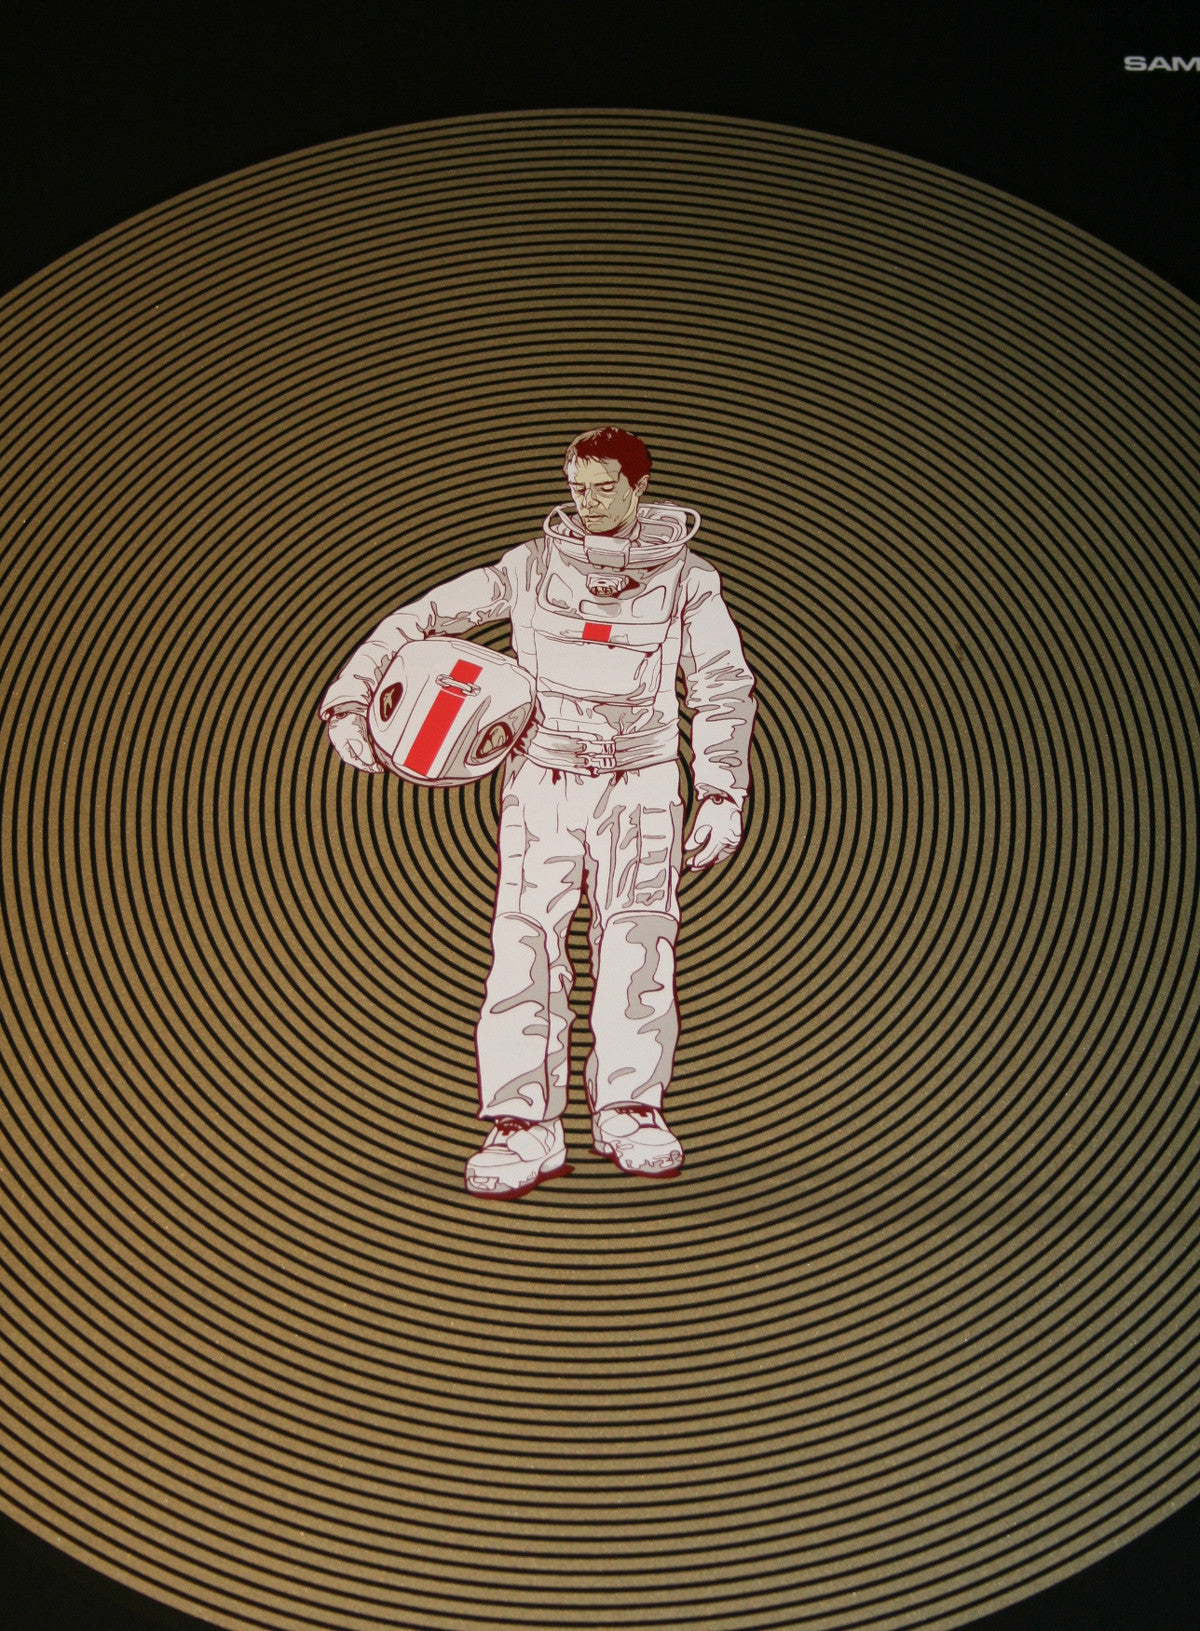 MOON by AllCity x Martin Ansin